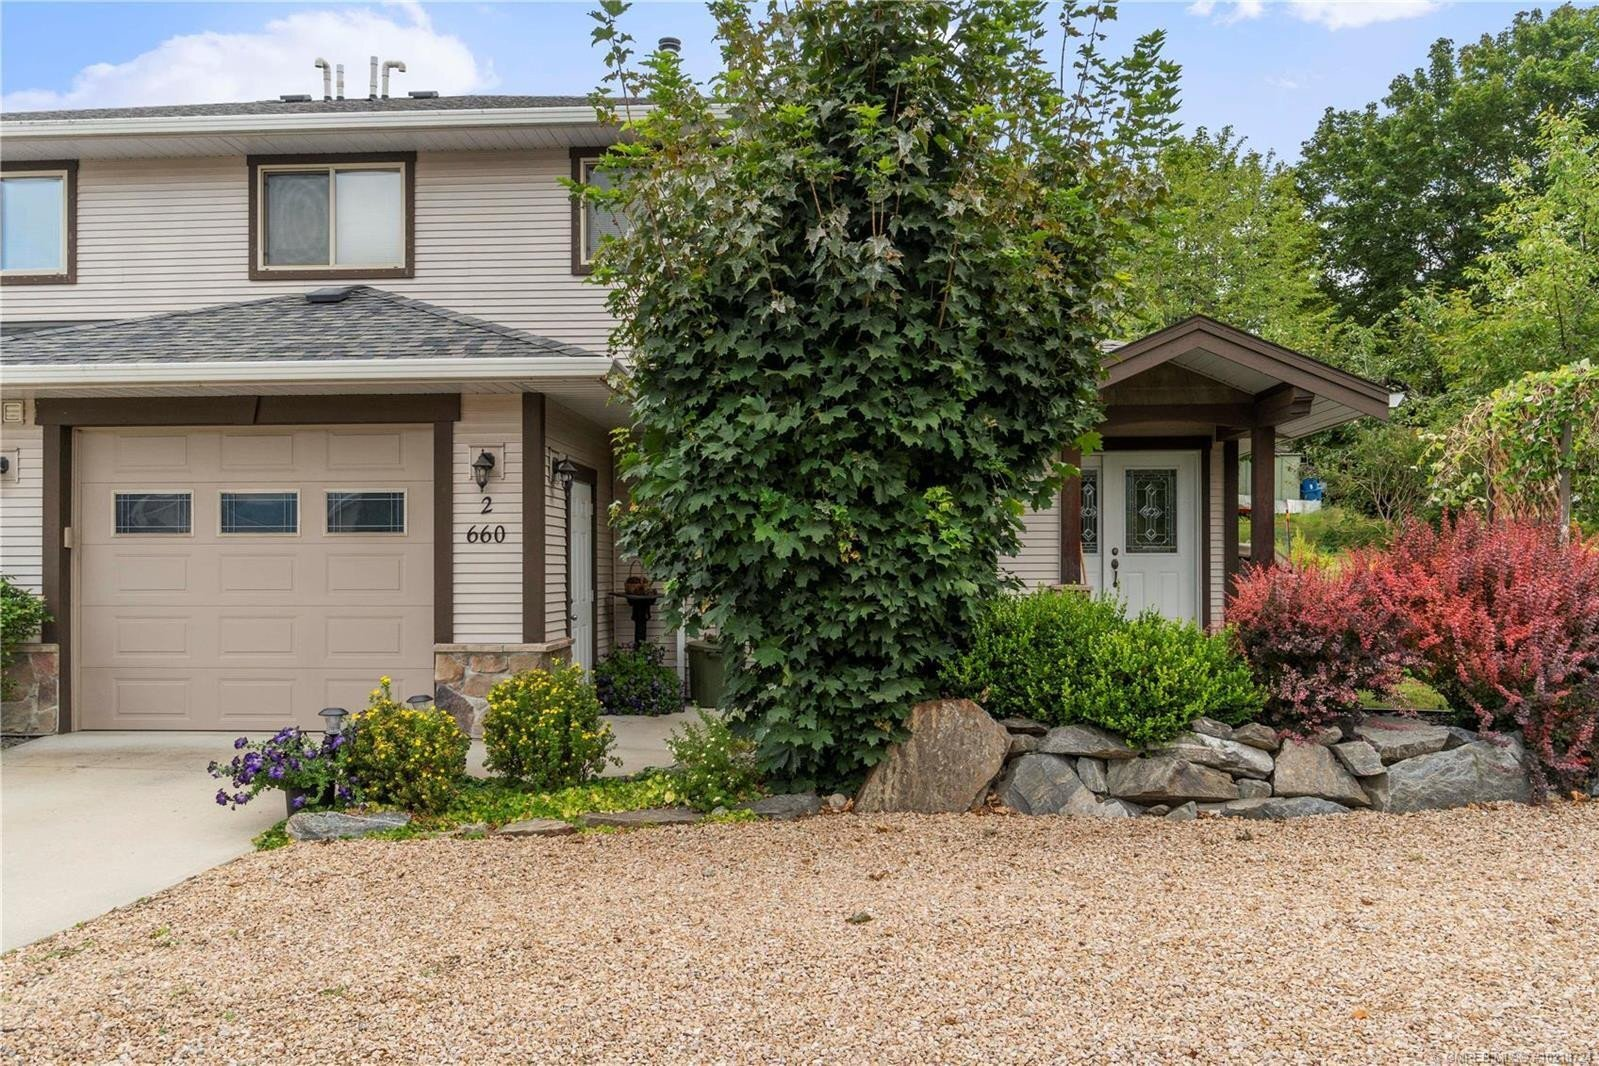 Townhouse for sale at 660 20 St Northeast Unit 2 Salmon Arm British Columbia - MLS: 10218724